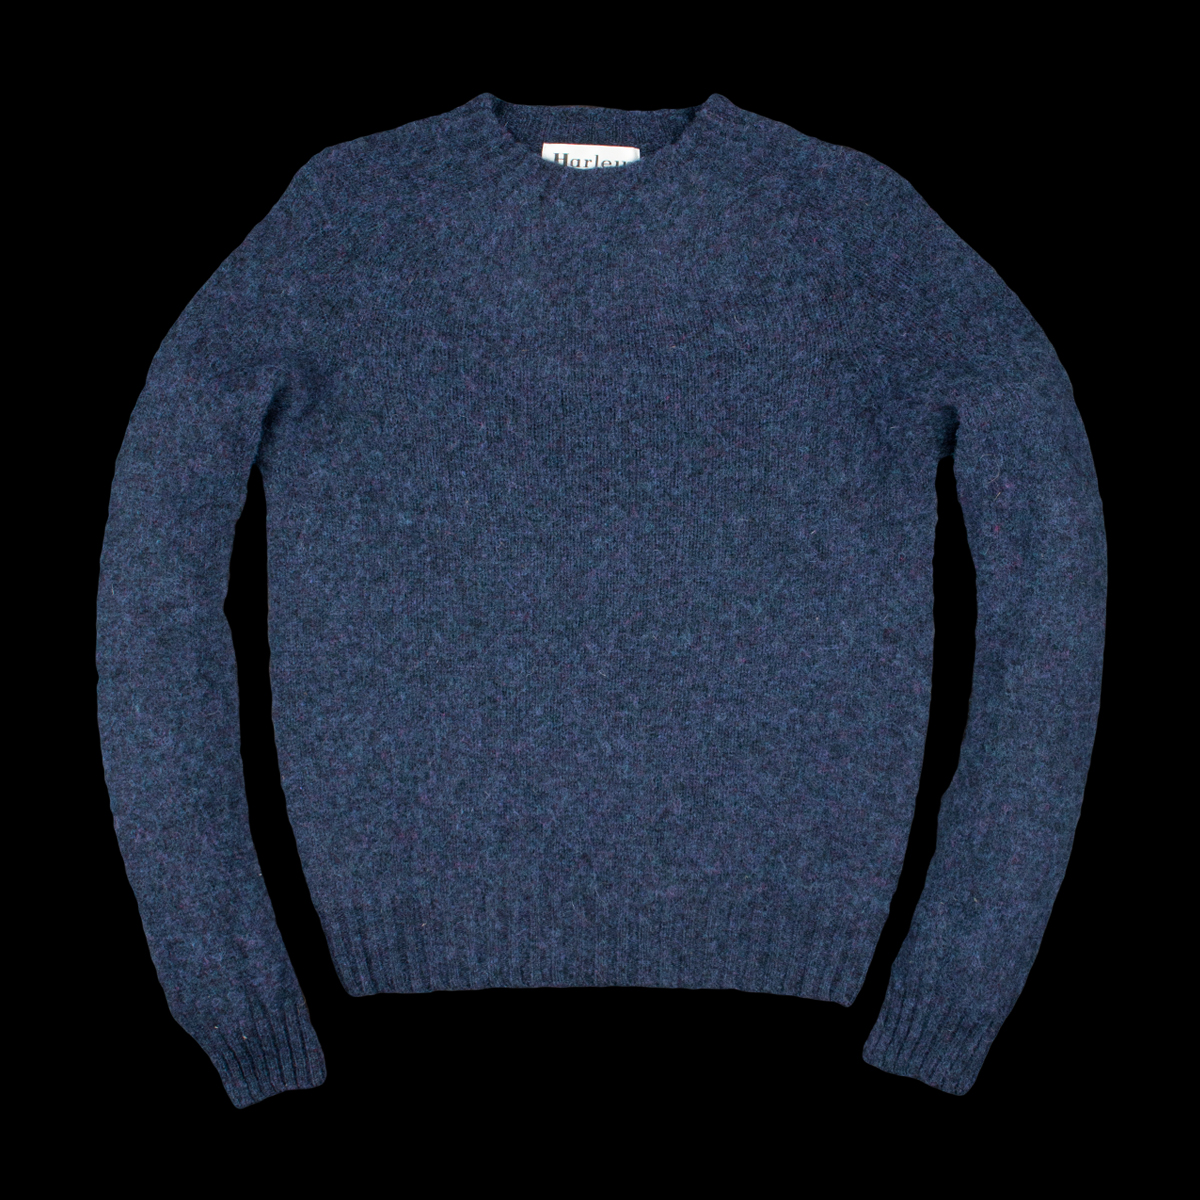 Harley Of Scotland For Unionmade Shetland Crew Neck Sweater In